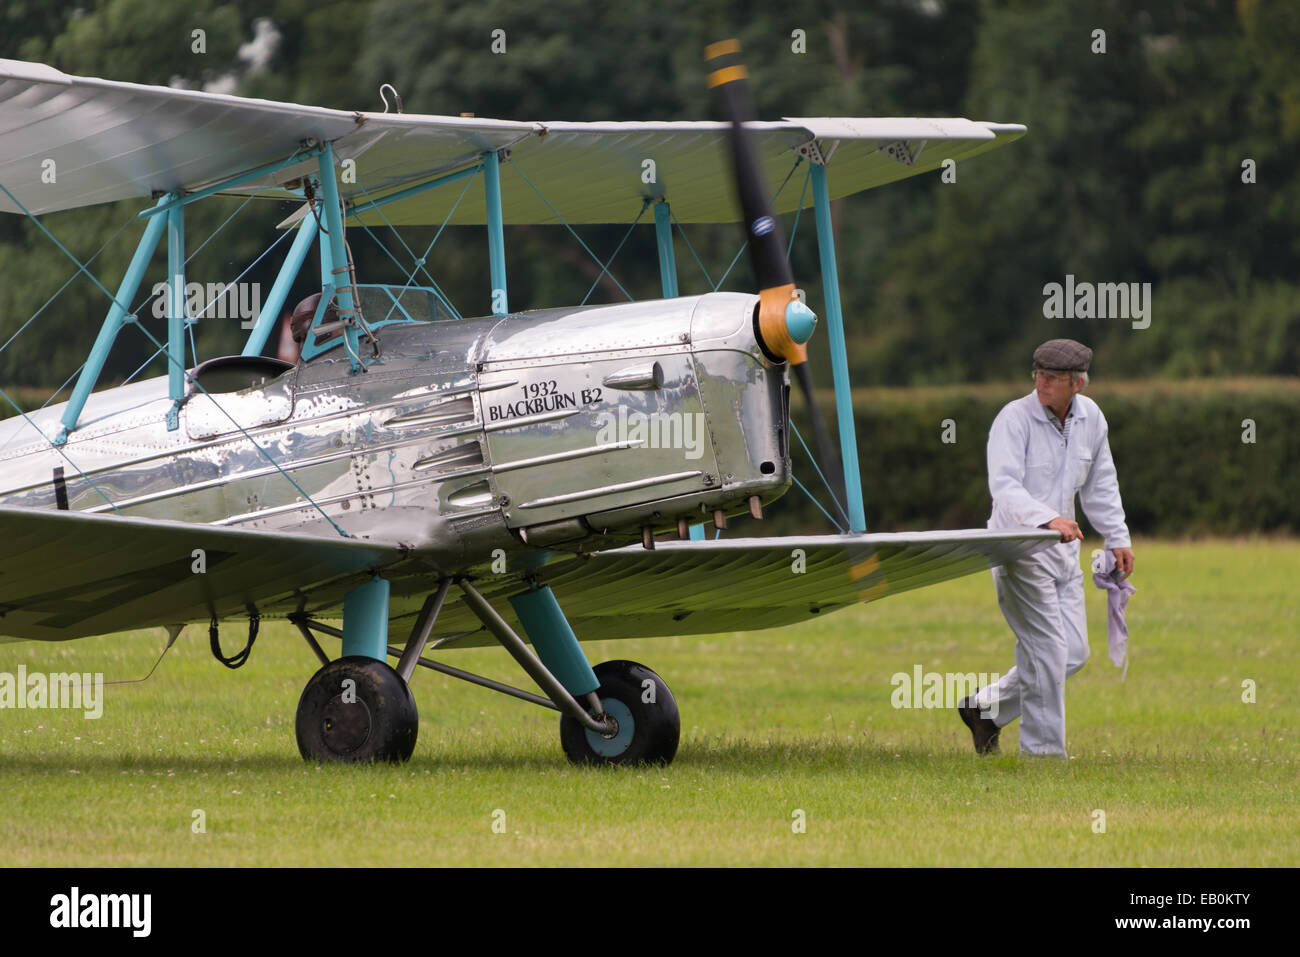 Biggleswade, UK - 29 June 2014: Vintage 1932 Blackburn B2 British bi-plane at the Shuttleworth Collection air show. - Stock Image